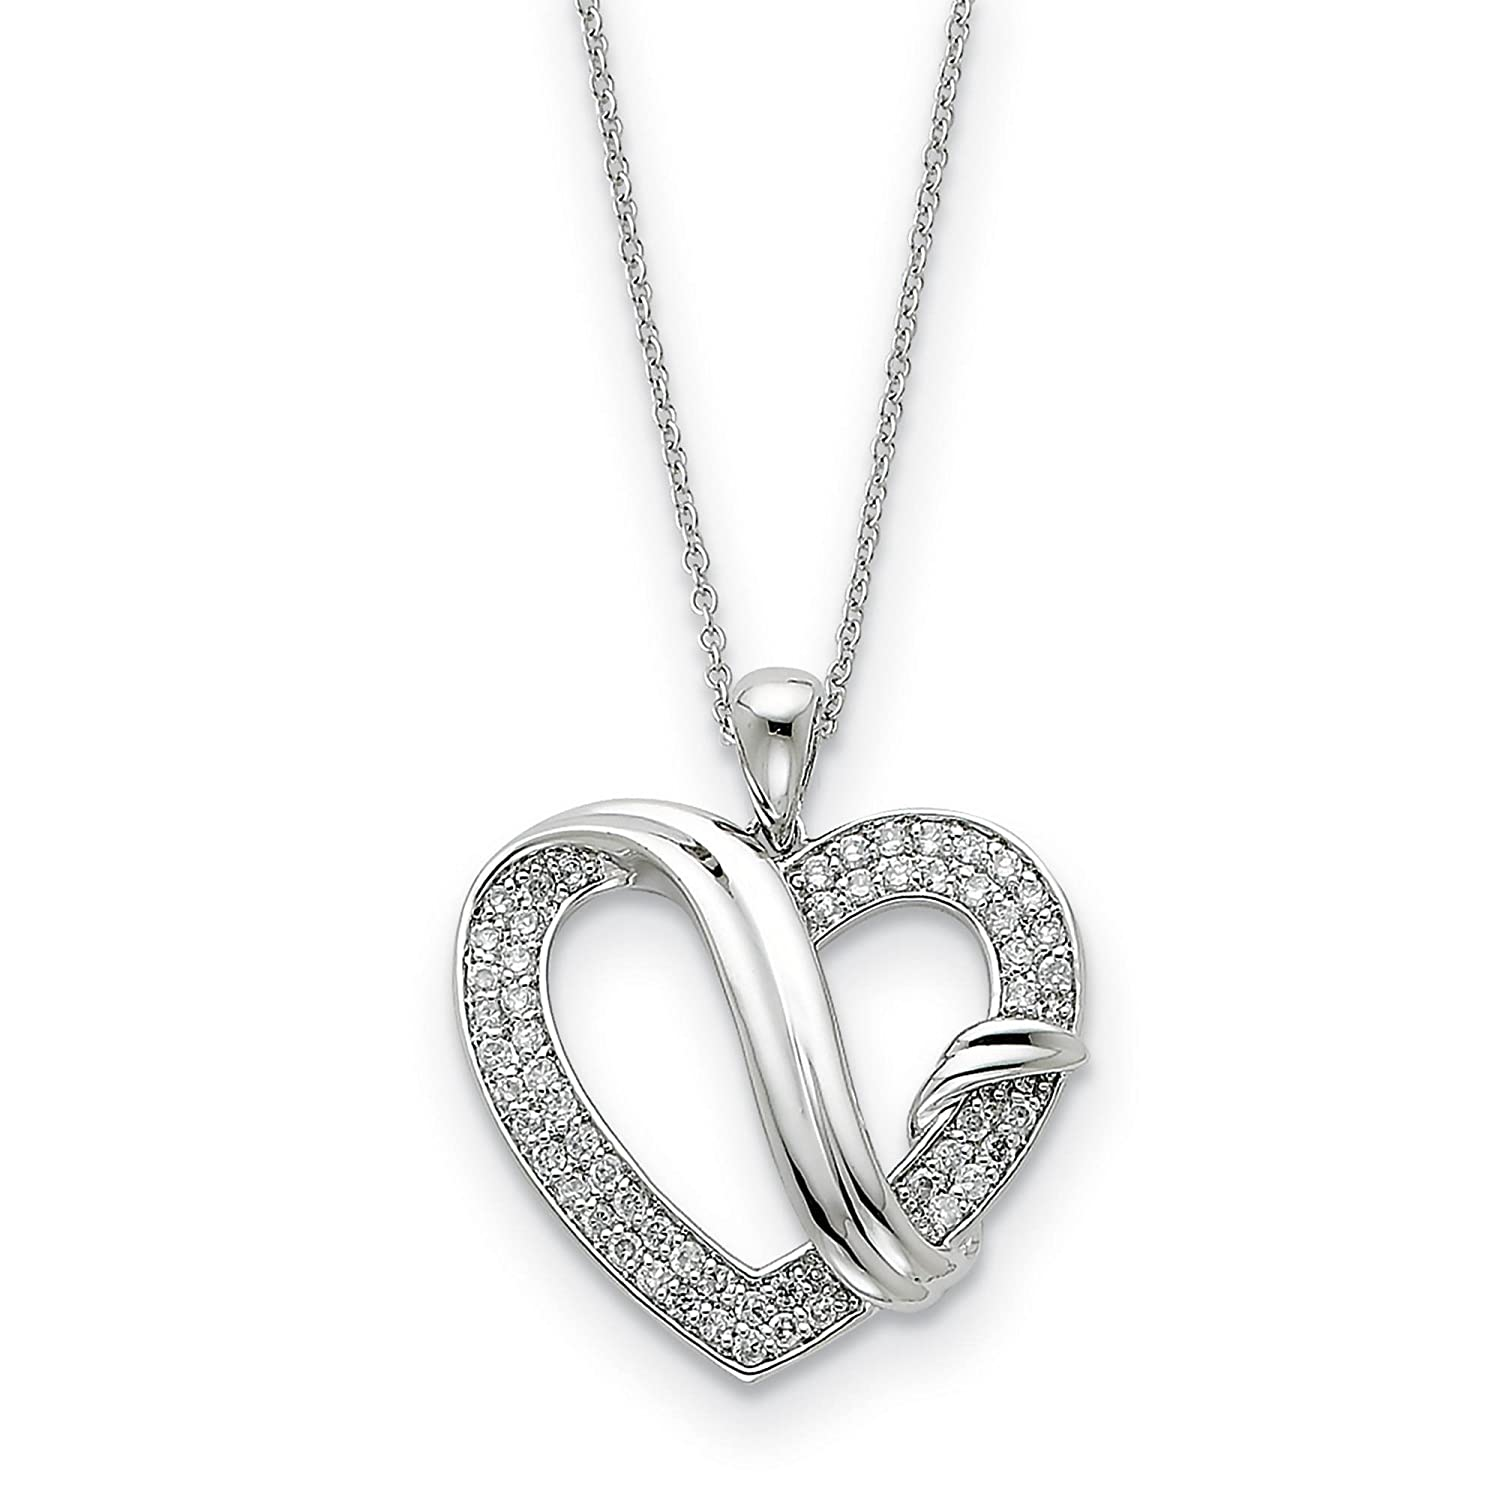 925 Sterling Silver Polished CZ Forever Grateful Heart Pendant Necklace 18 by Sentimental Expressions